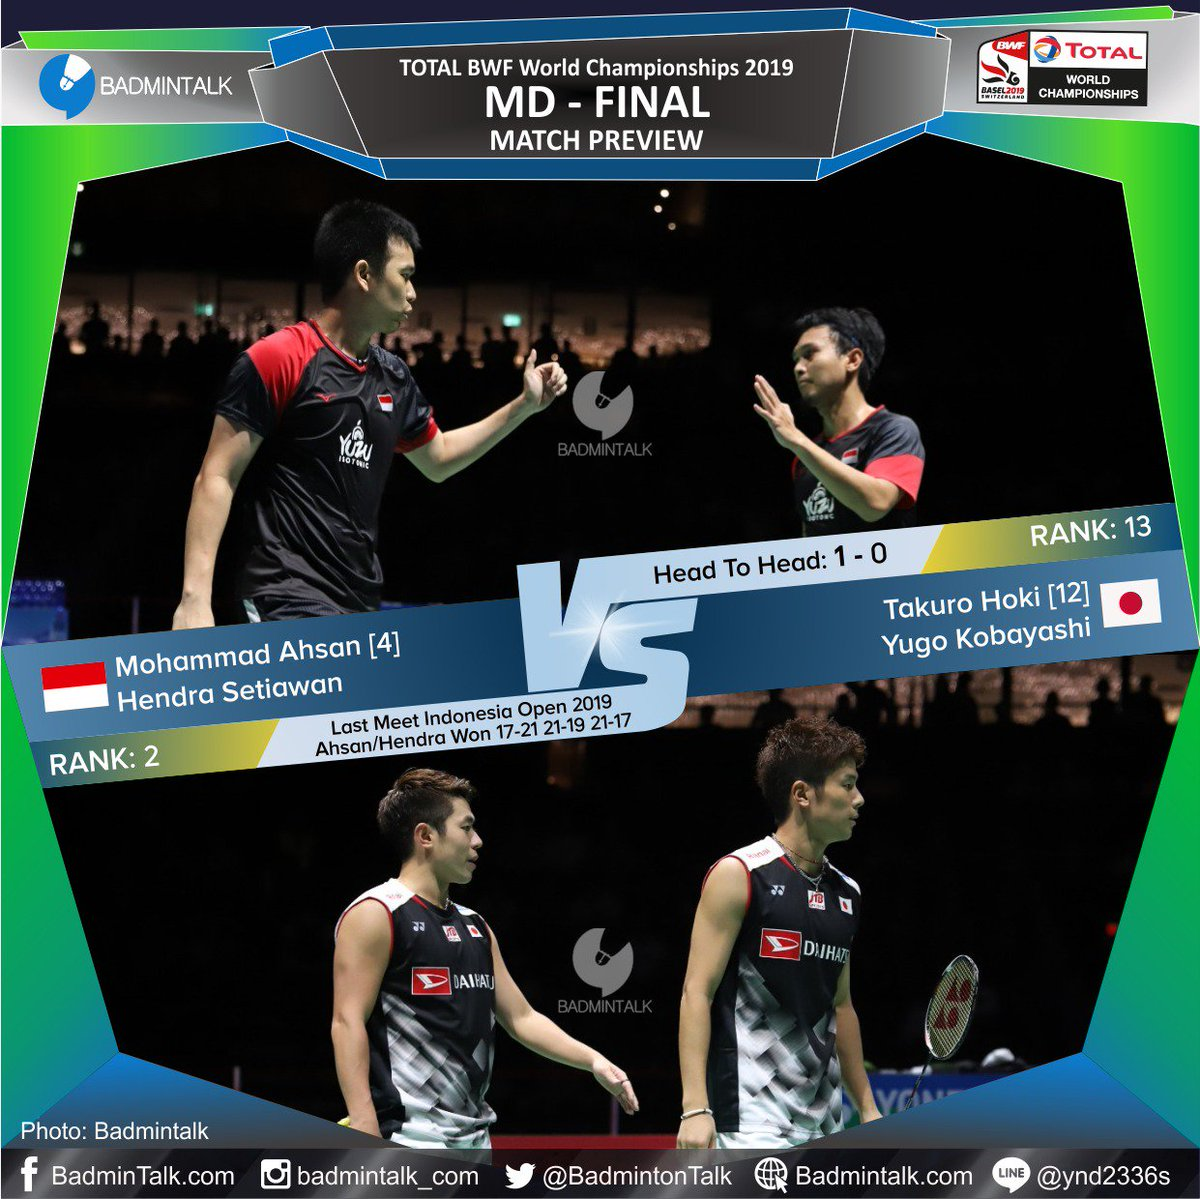 And the LAST FINAL of the day: Men's DoublesThe pair who created the biggest upset in this discipline vs the history maker.Mohammad Ahsan/Hendra Setiawan (INA/4) vs Takuro Hoki/Yugo Kobayashi (JPN/12)Rank: 2-13H2H: 1-0Last meet: Indonesia Open 2019#BWC2019